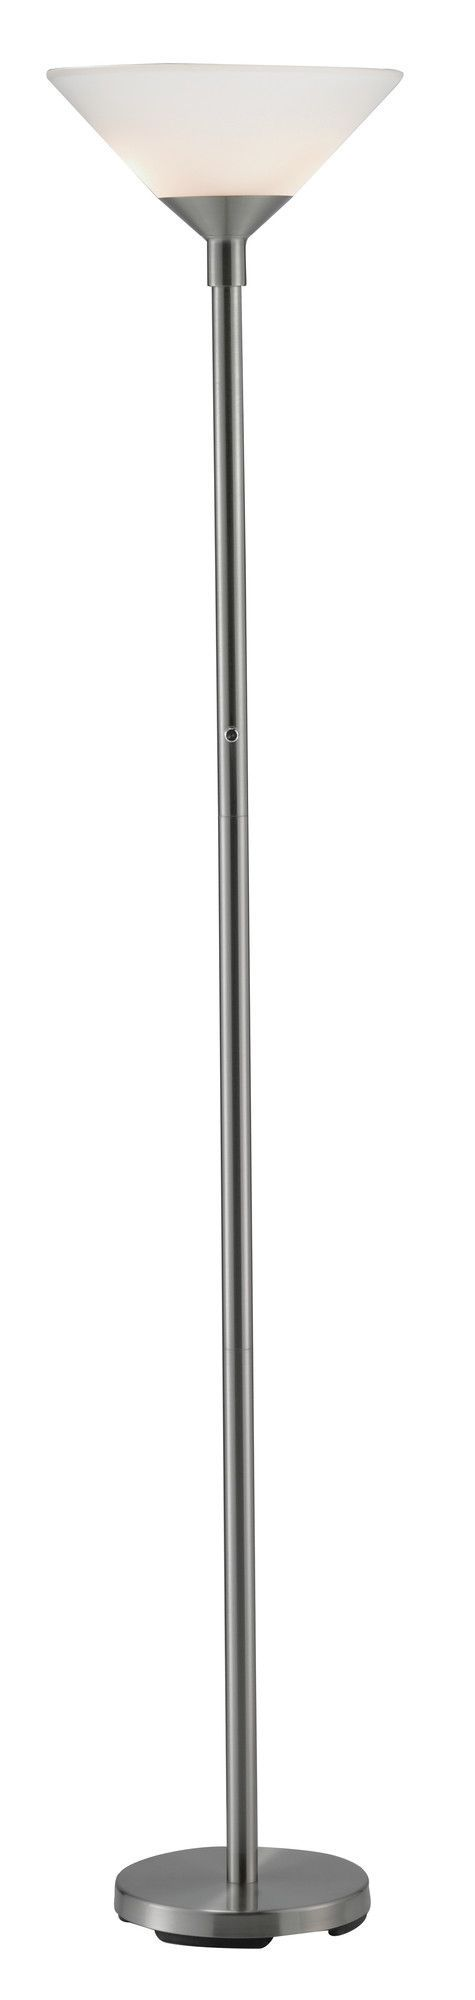 Features:  -Floor lamp.  -High / low switch.  Material: -Metal.  Hardware Material: -Stainless steel.  Shade Material: -Plastic. Finish Black -  Base Finish: -Black. Finish Black -  Hardware Finish: -